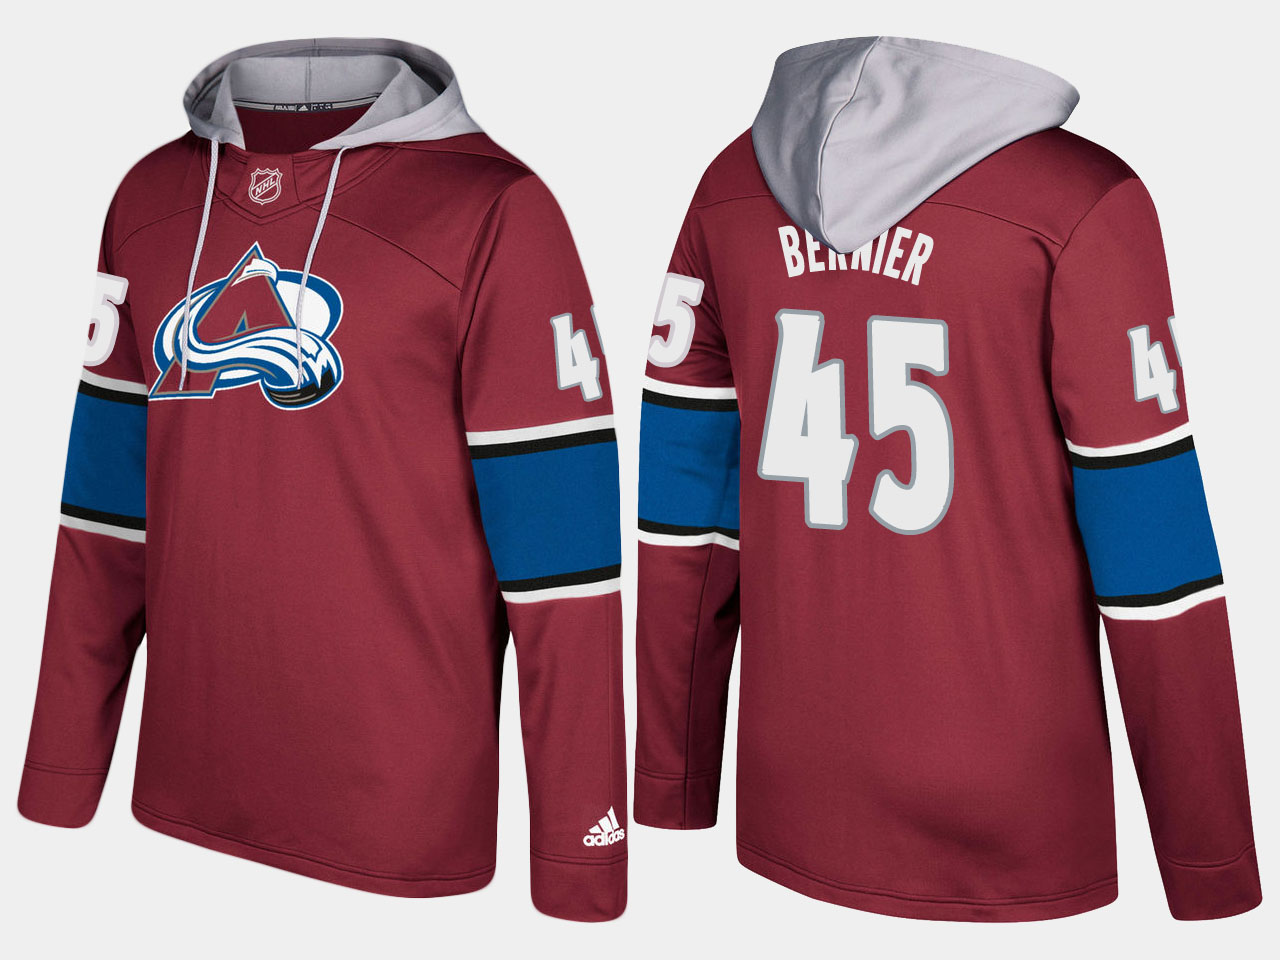 Men NHL Colorado avalanche 45 jonathan bernier burgundy hoodie